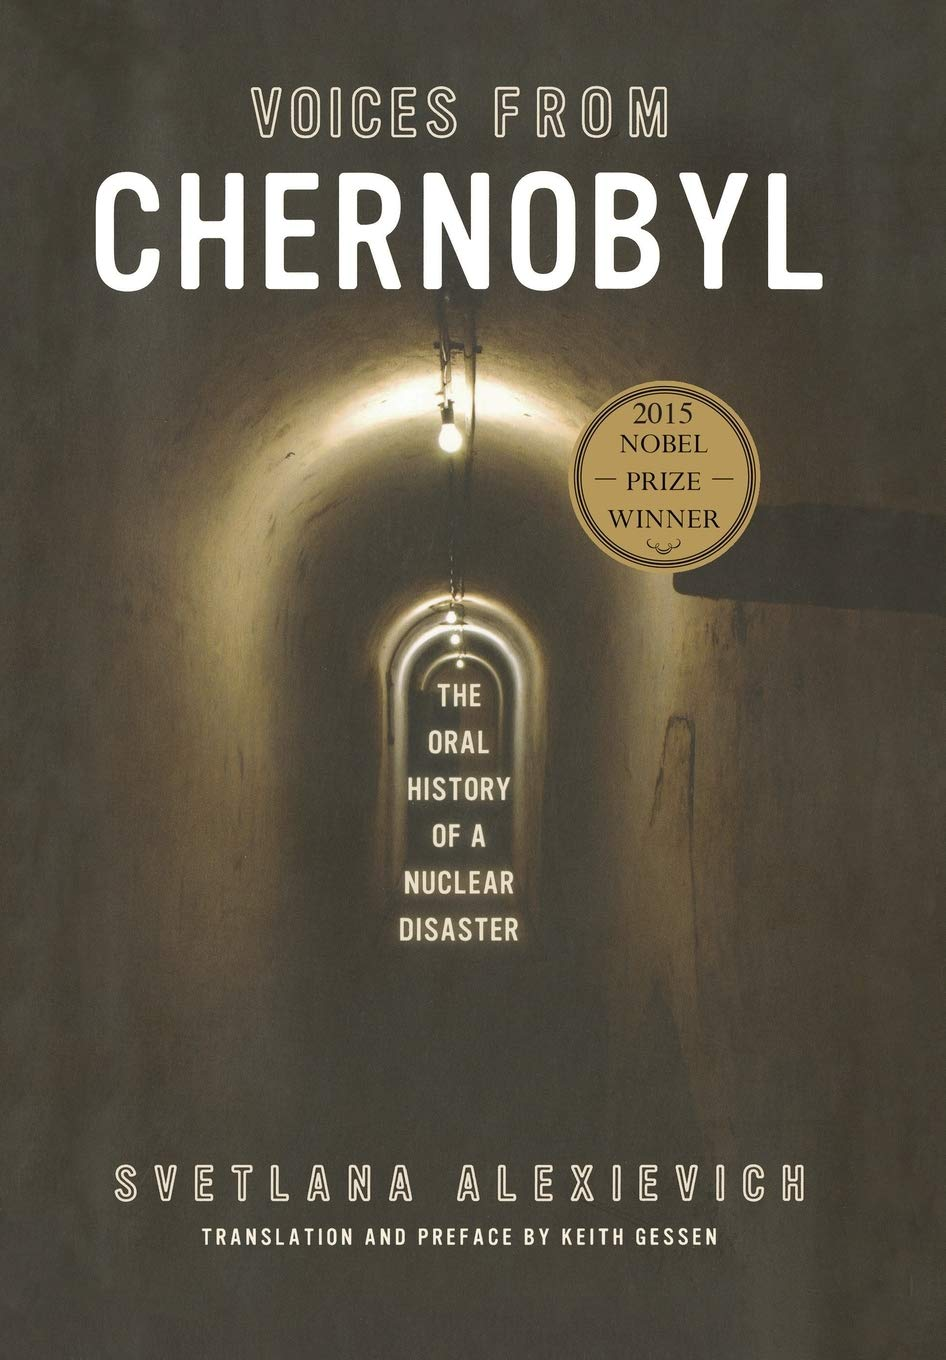 Voices From Chernobyl: The Oral History of a